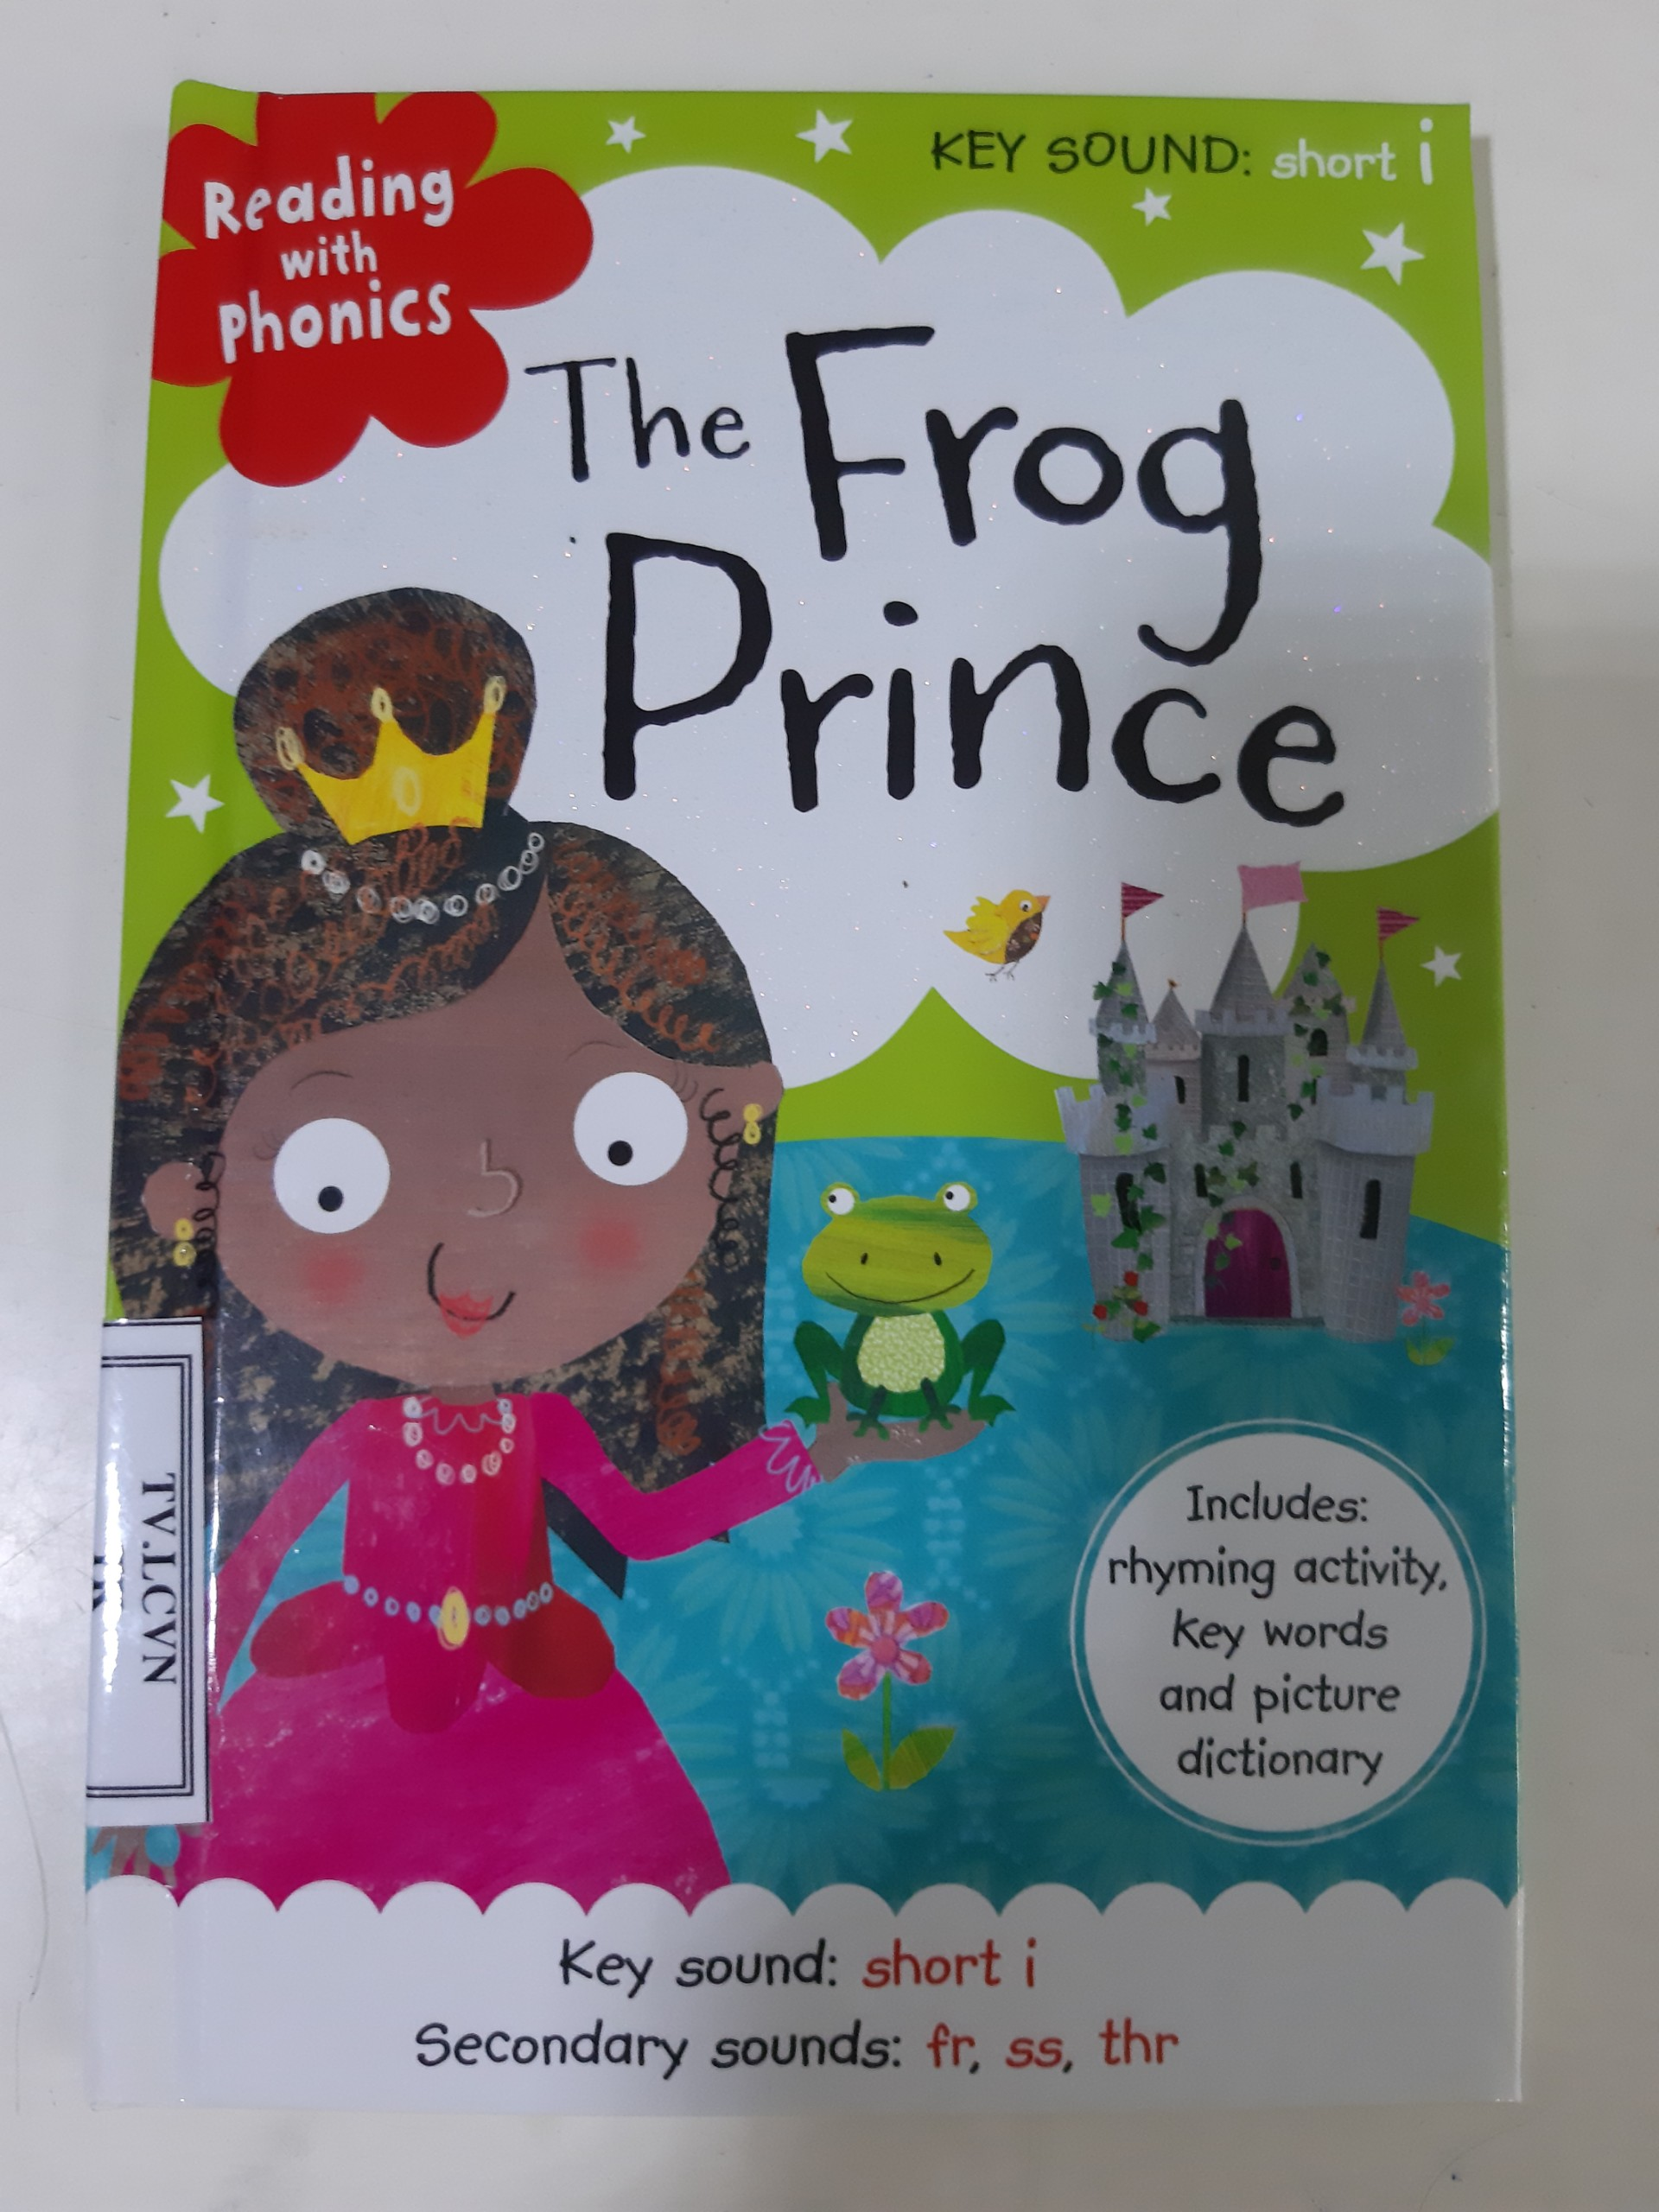 Reading with Phonics: The Frog Prince